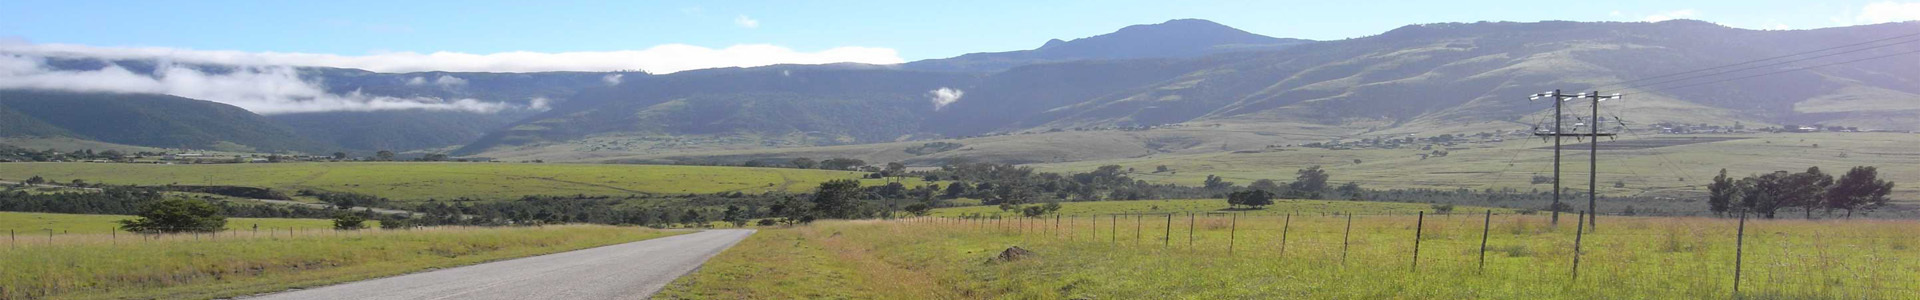 Amakhala Game Reserve Eastern Cape Surrounds